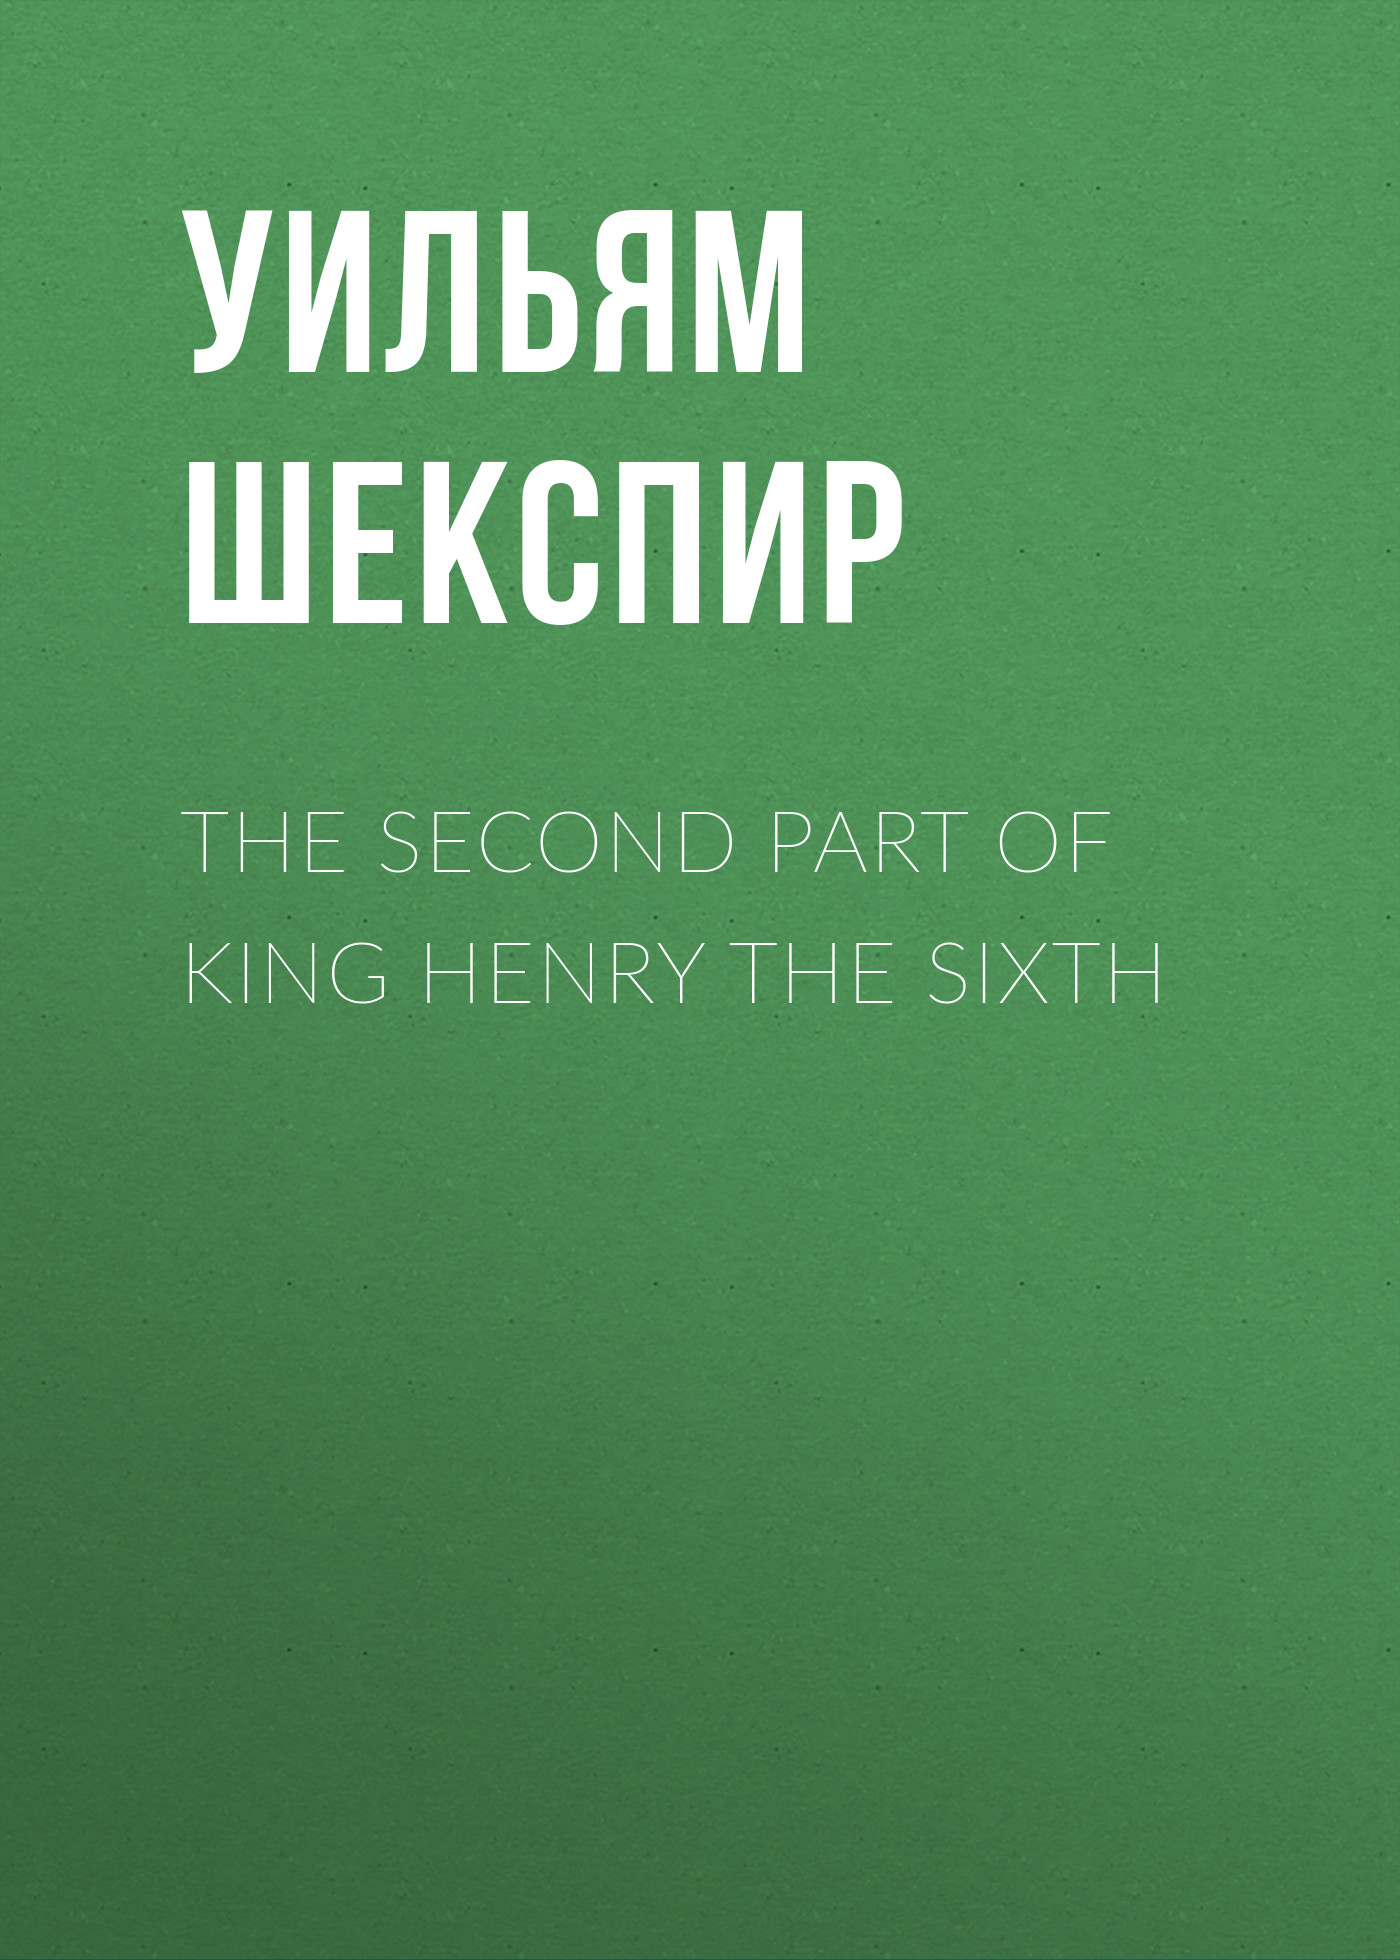 Уильям Шекспир The Second Part of King Henry the Sixth уильям шекспир king henry vi first part